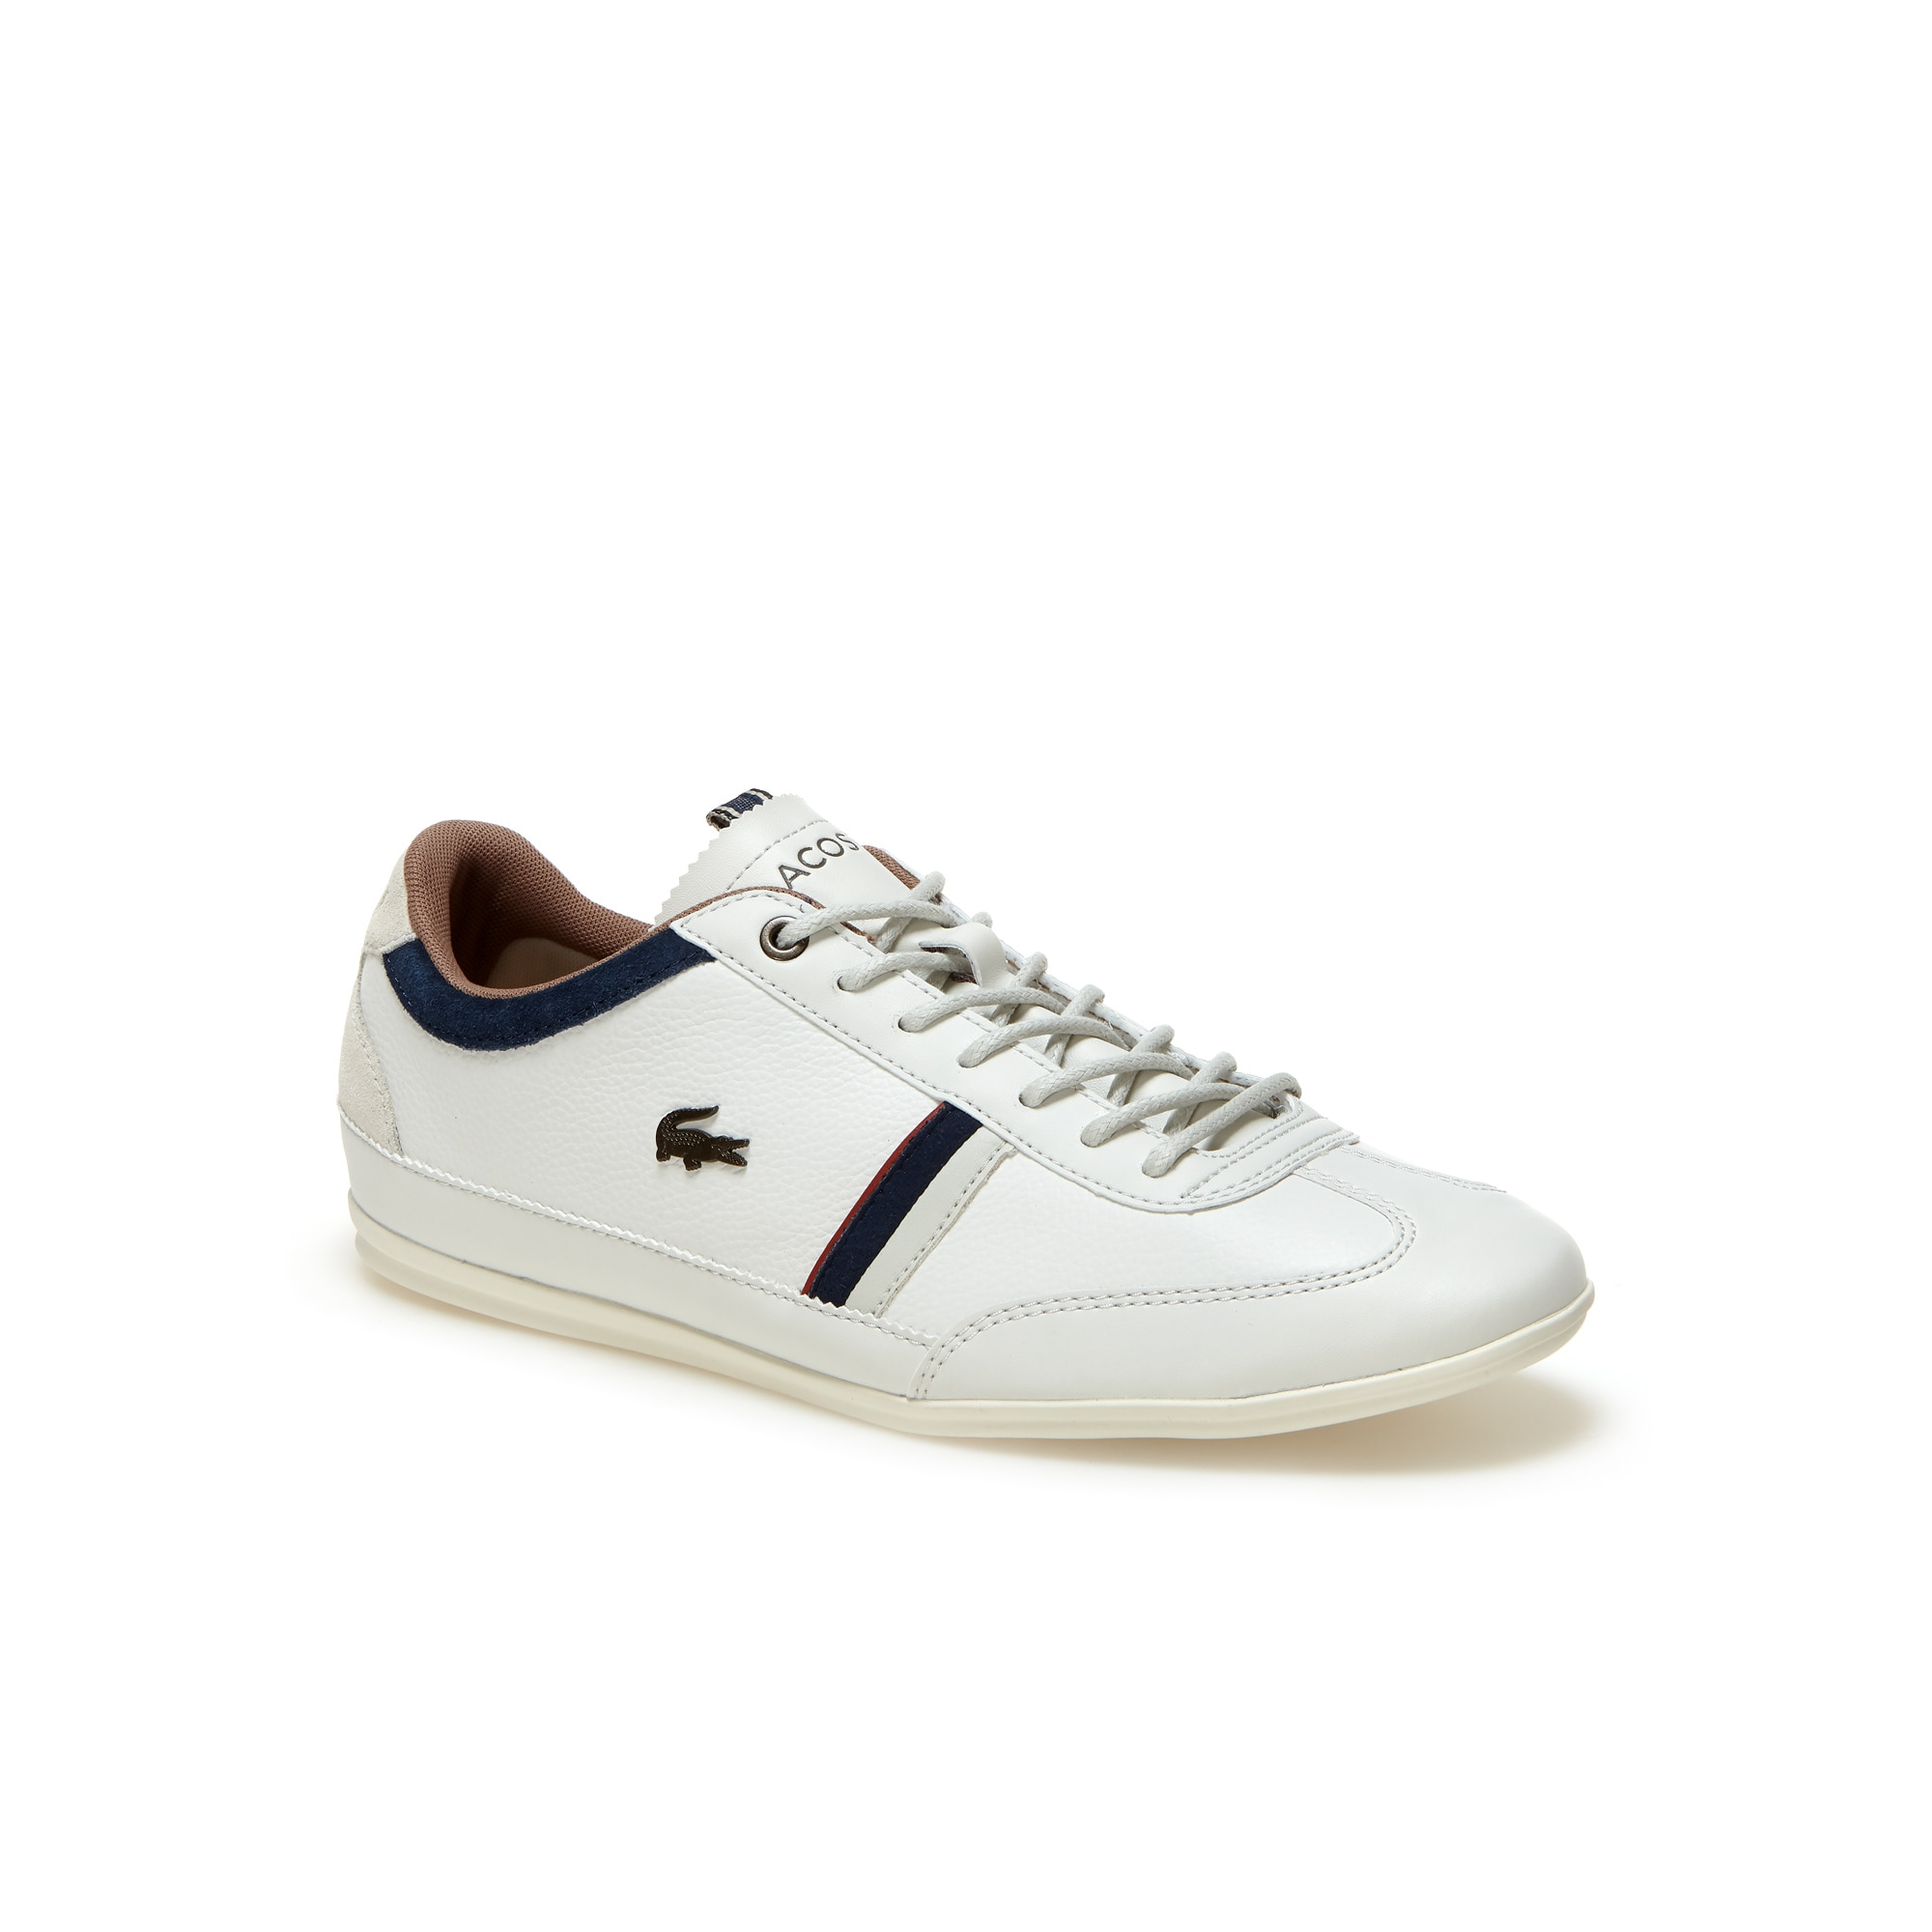 Men's Misano Leather Trainers